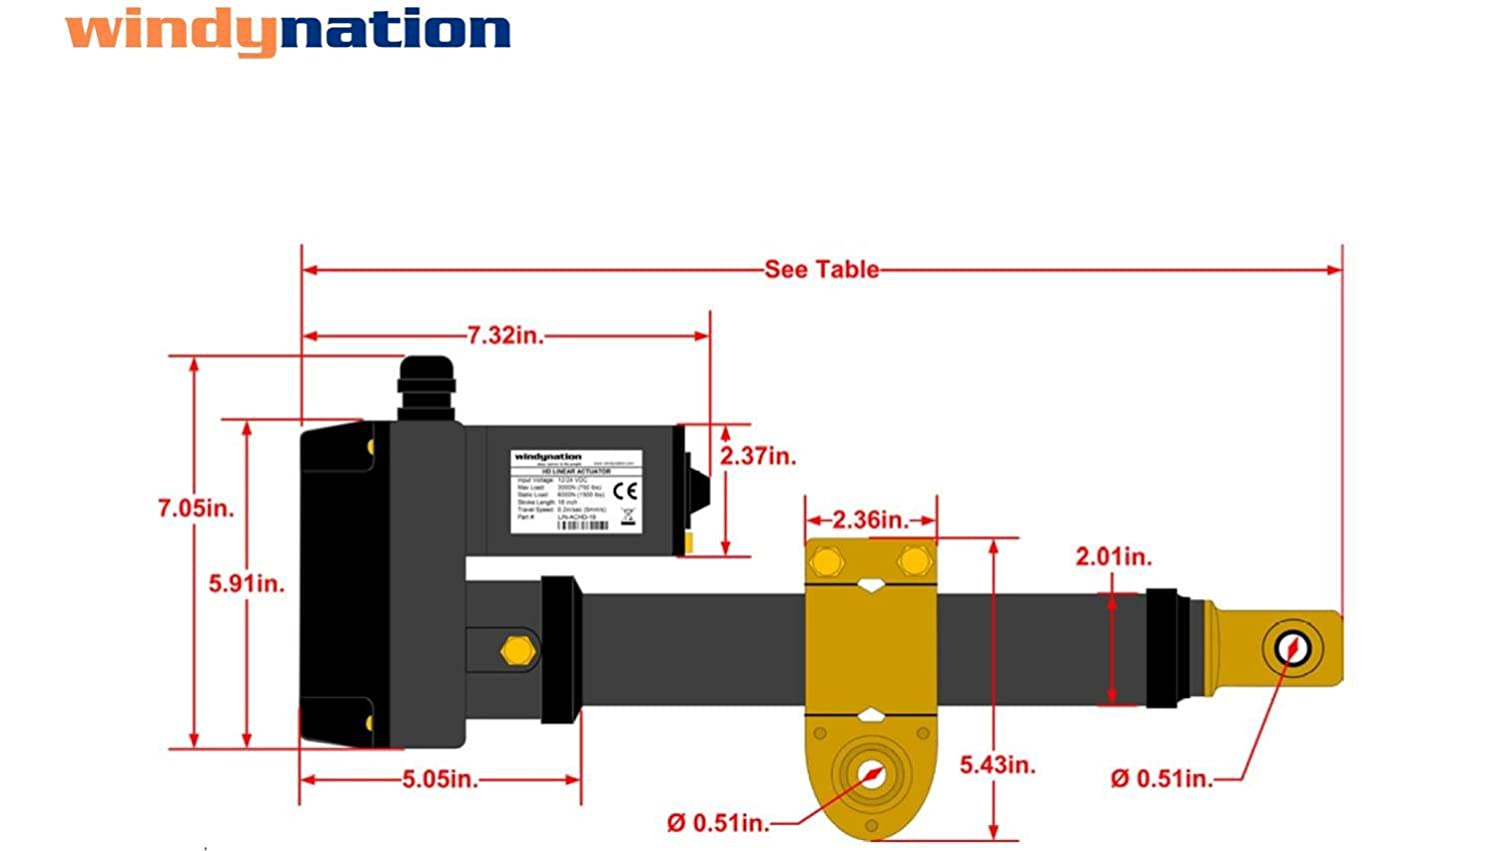 Windynation 24 Inch Stroke Heavy Duty Linear Actuator 12 Or Limit Switch Wiring Diagram Volt 750 Pound Lbs Maximum Lift For Solar Tracker Satellite Dish Gate Opener And